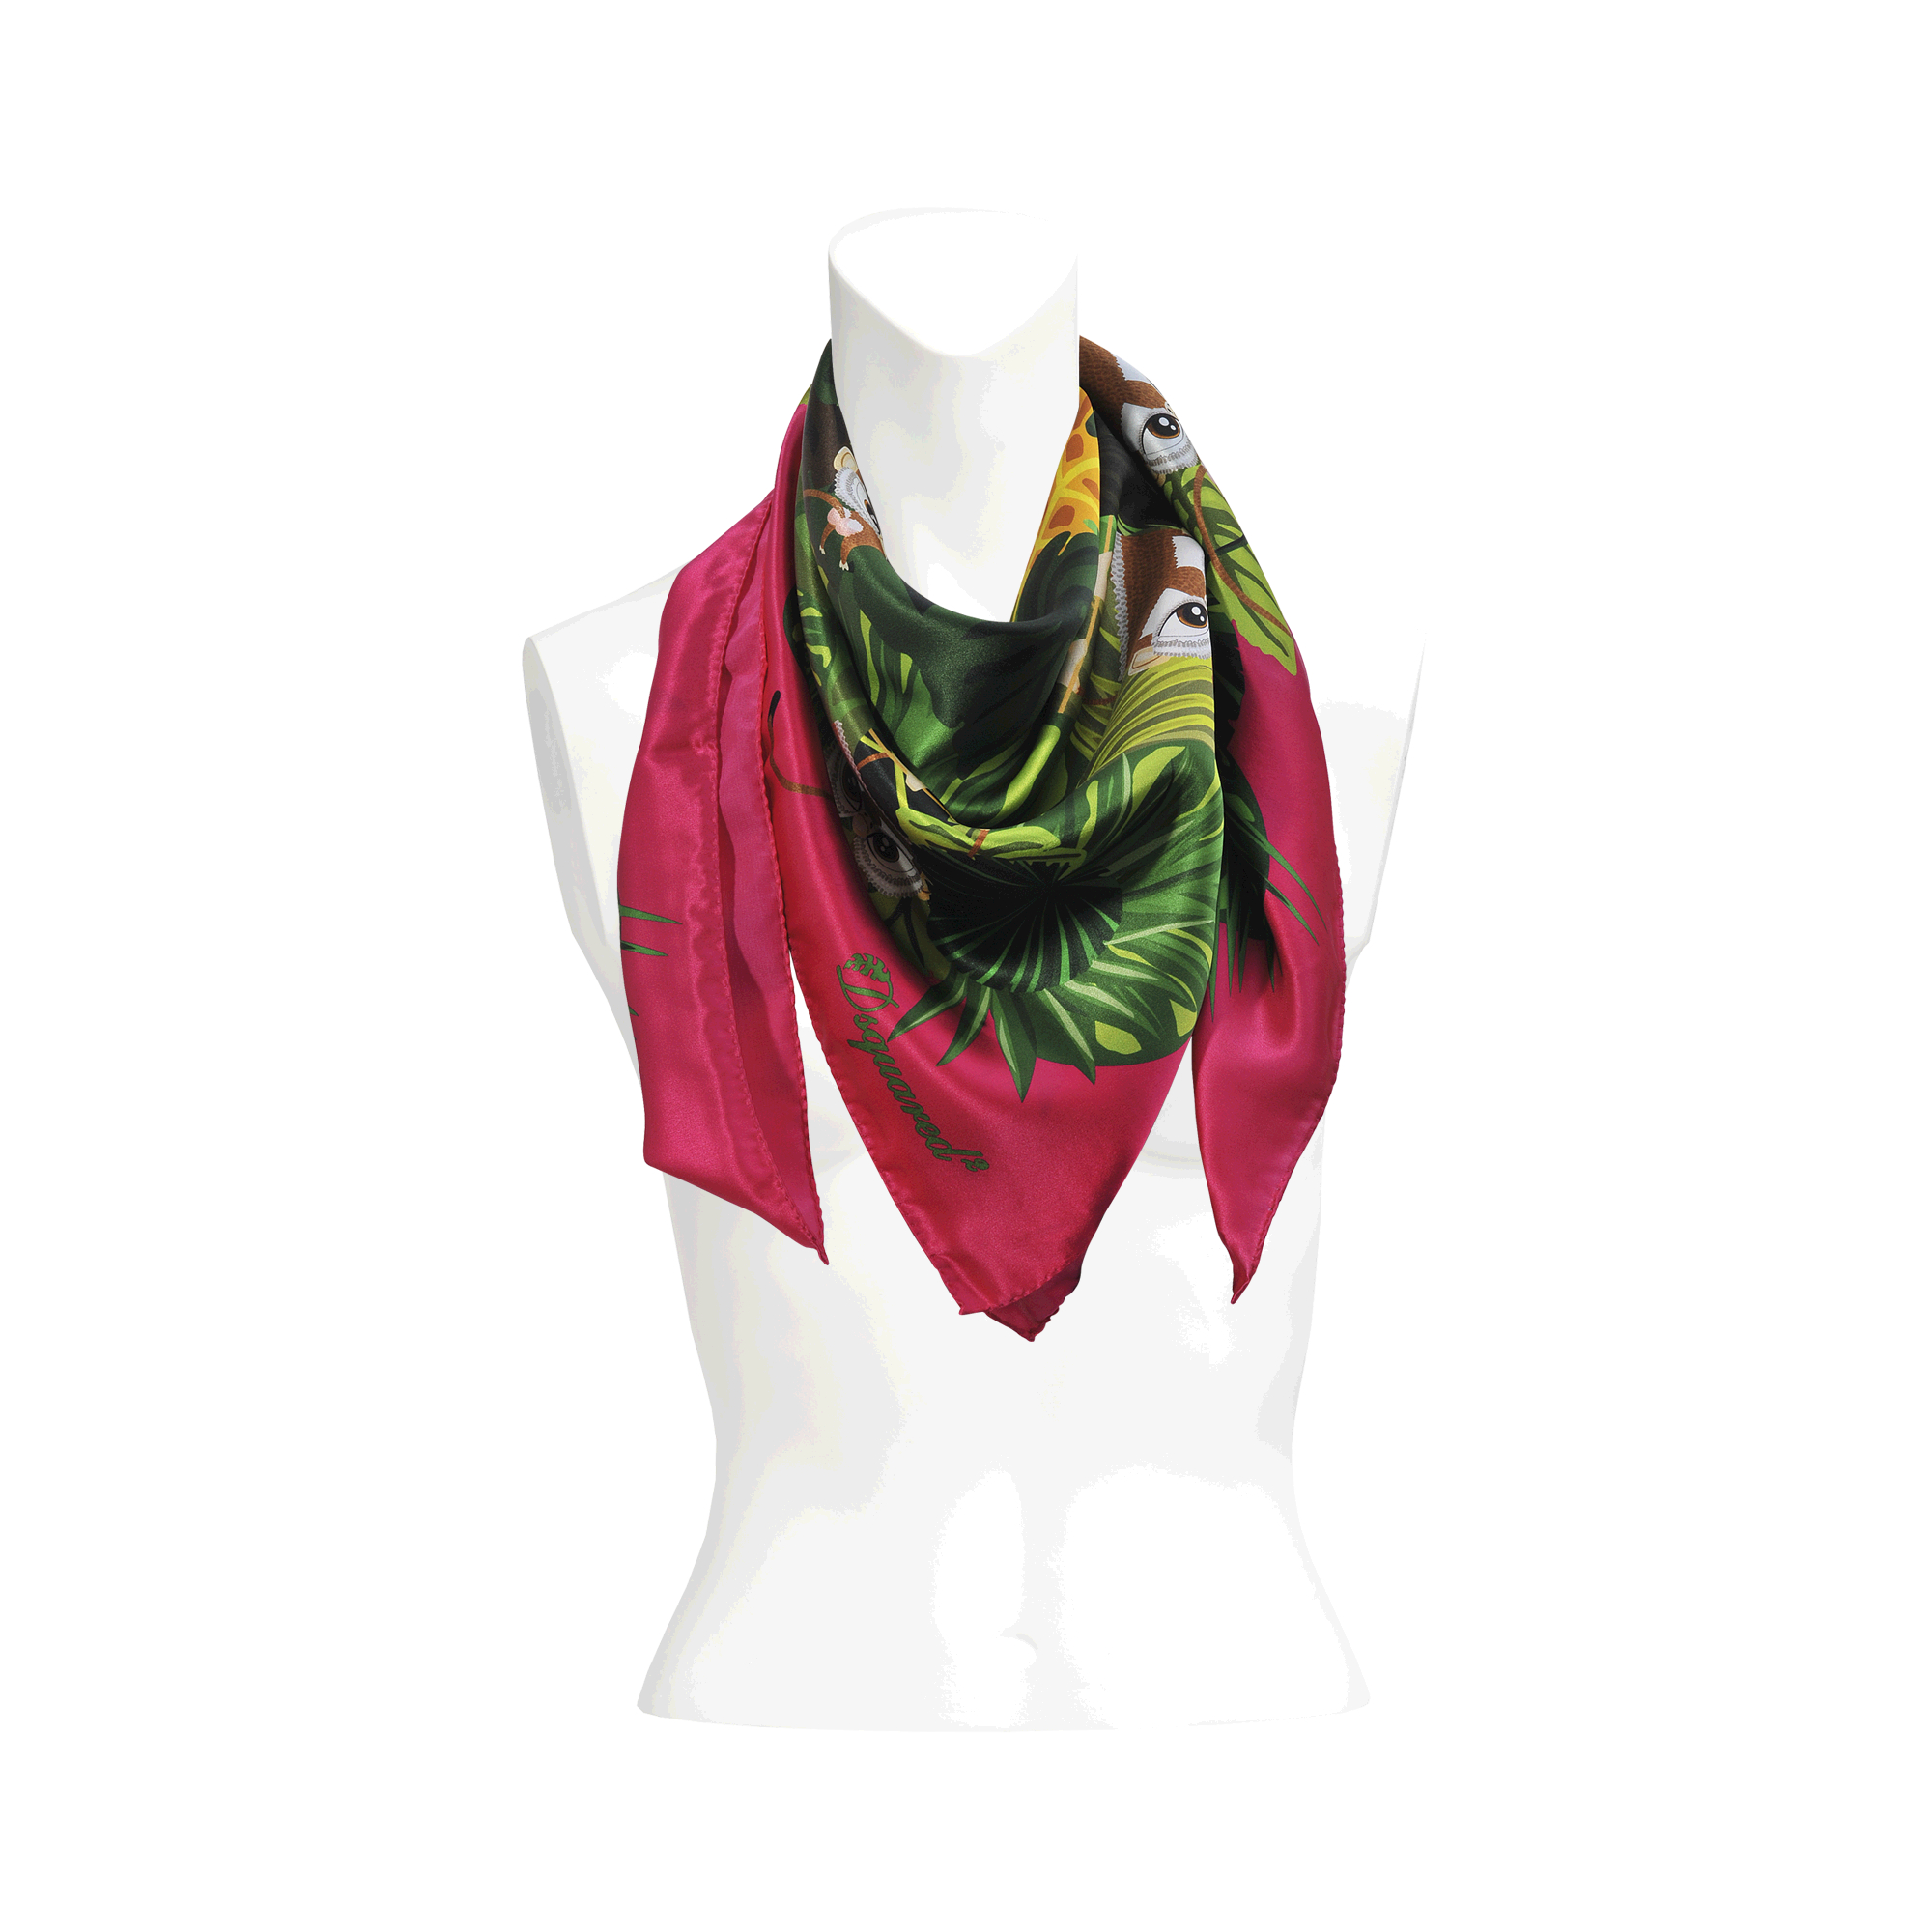 scarf dorothee fringes ferrari accessories franco lyst gallery floral softness handmade with schumacher printed